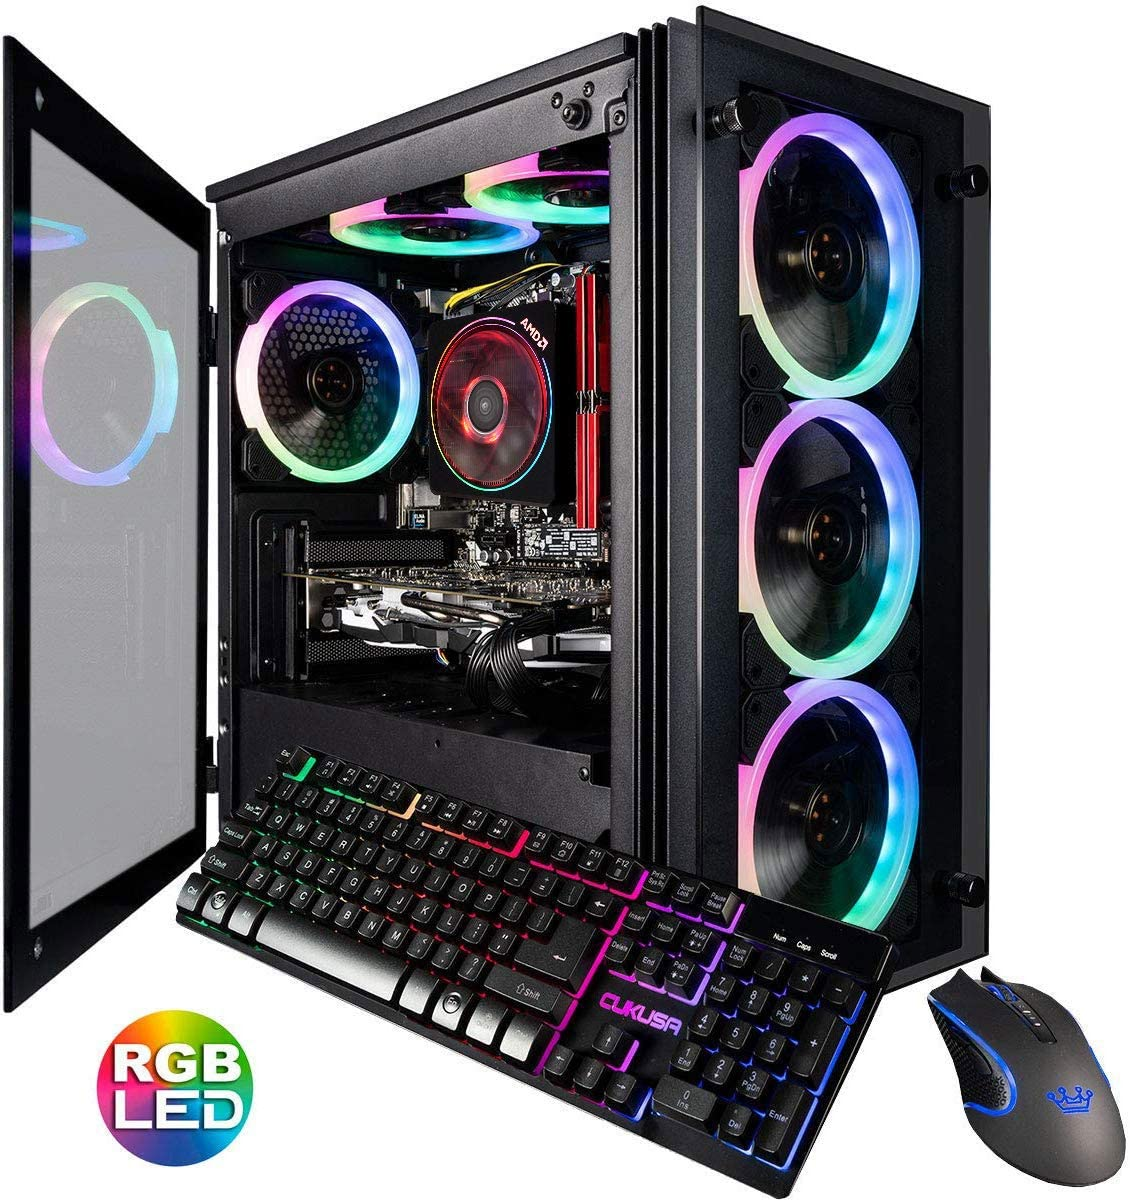 CUK Stratos Micro Gaming Desktop (AMD Ryzen 5 3600, 16GB DDR4 RAM, 512GB NVMe SSD, NVIDIA GeForce GTX 1650 Super 4GB, 600W Gold PSU, Windows 10 Home) Gamer PC Computer